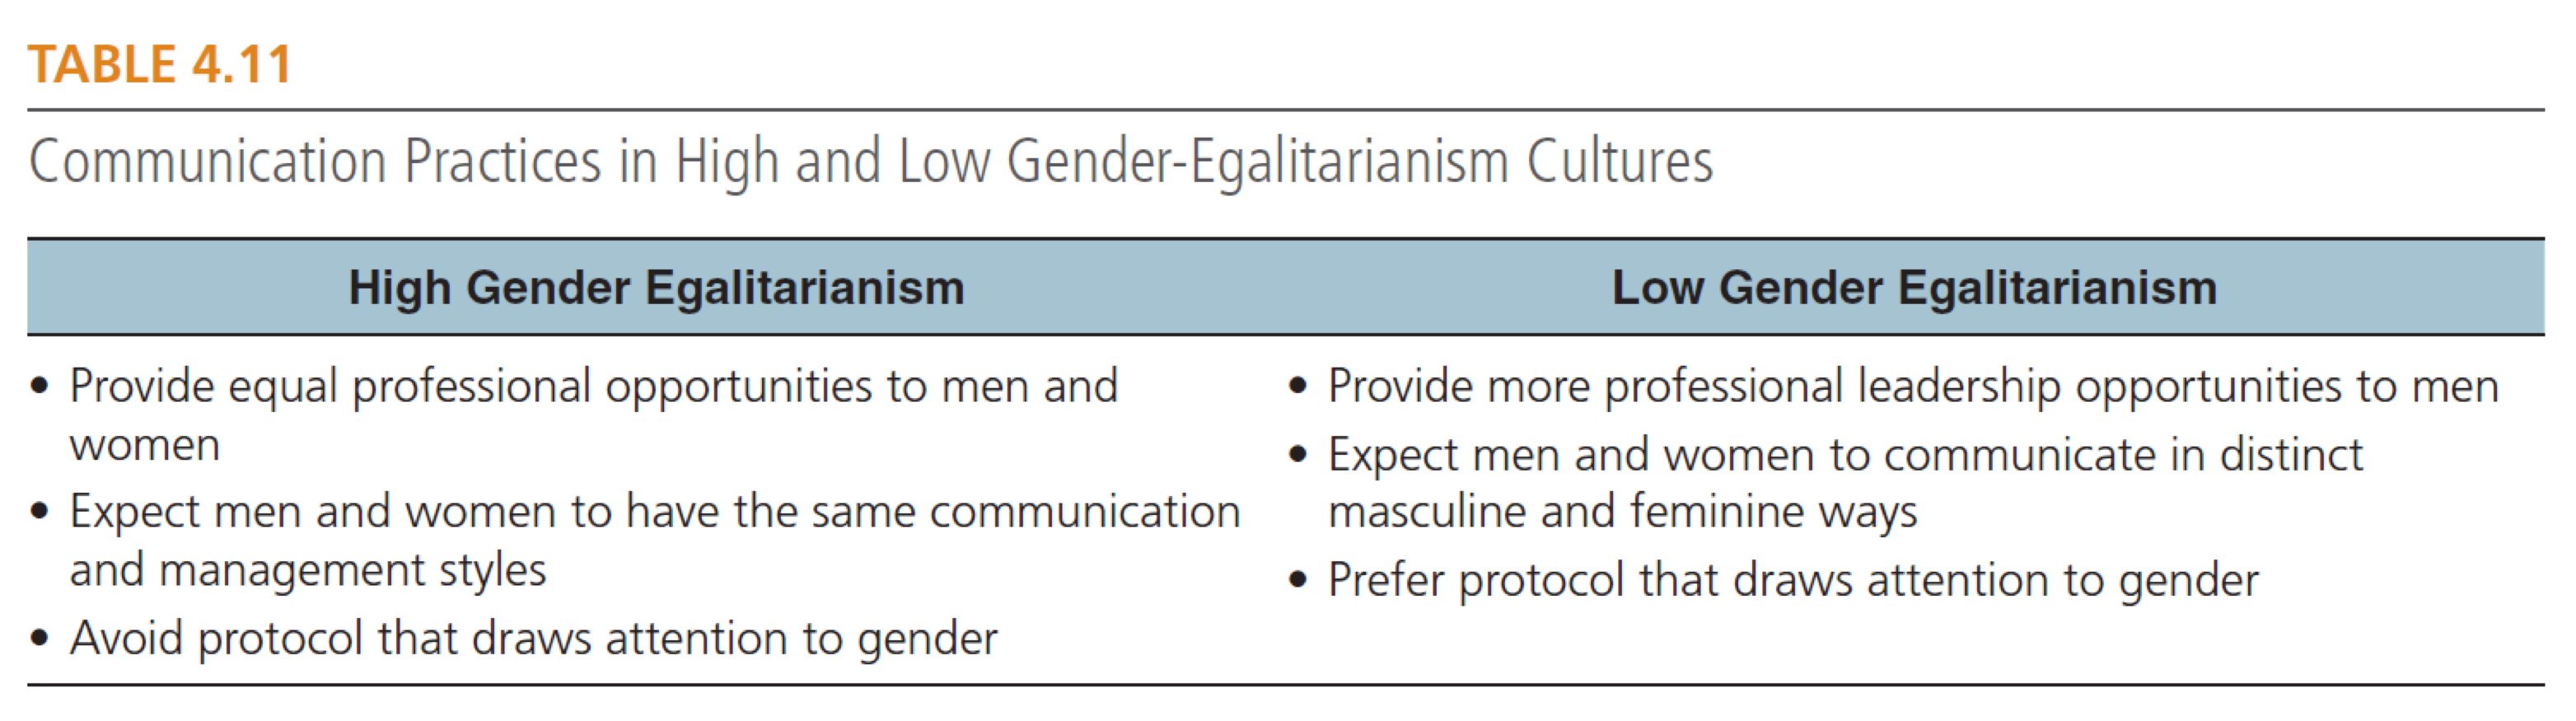 Communication Practices in High and Low Gender-Egalitarianism Cultures